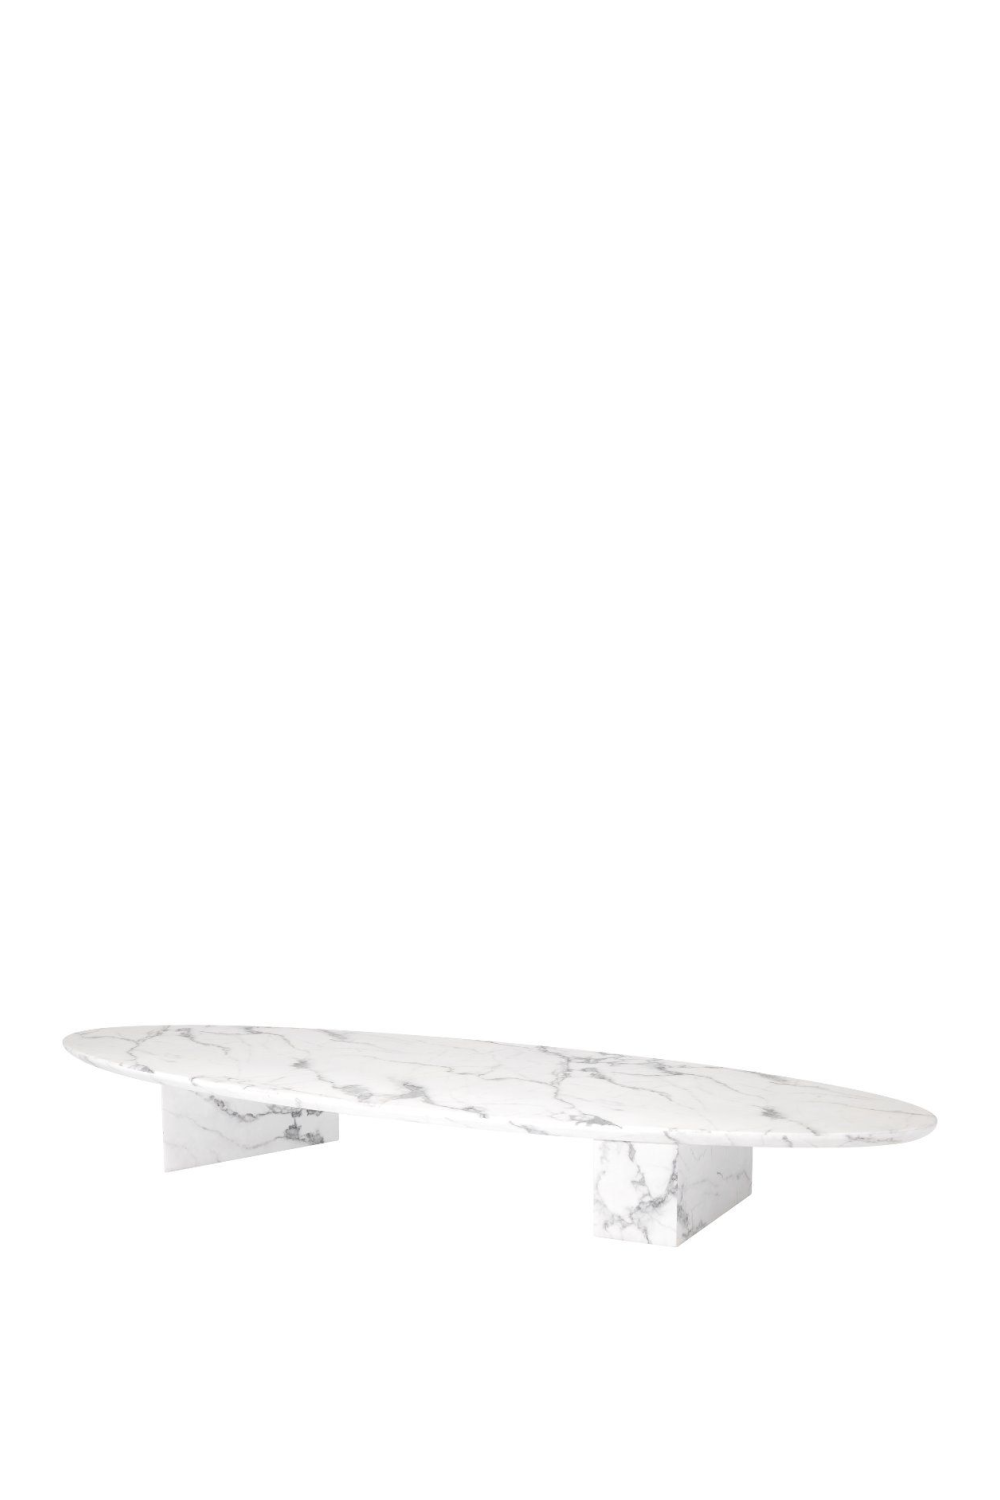 White Marble Oval Coffee Table | Eichholtz Aurore